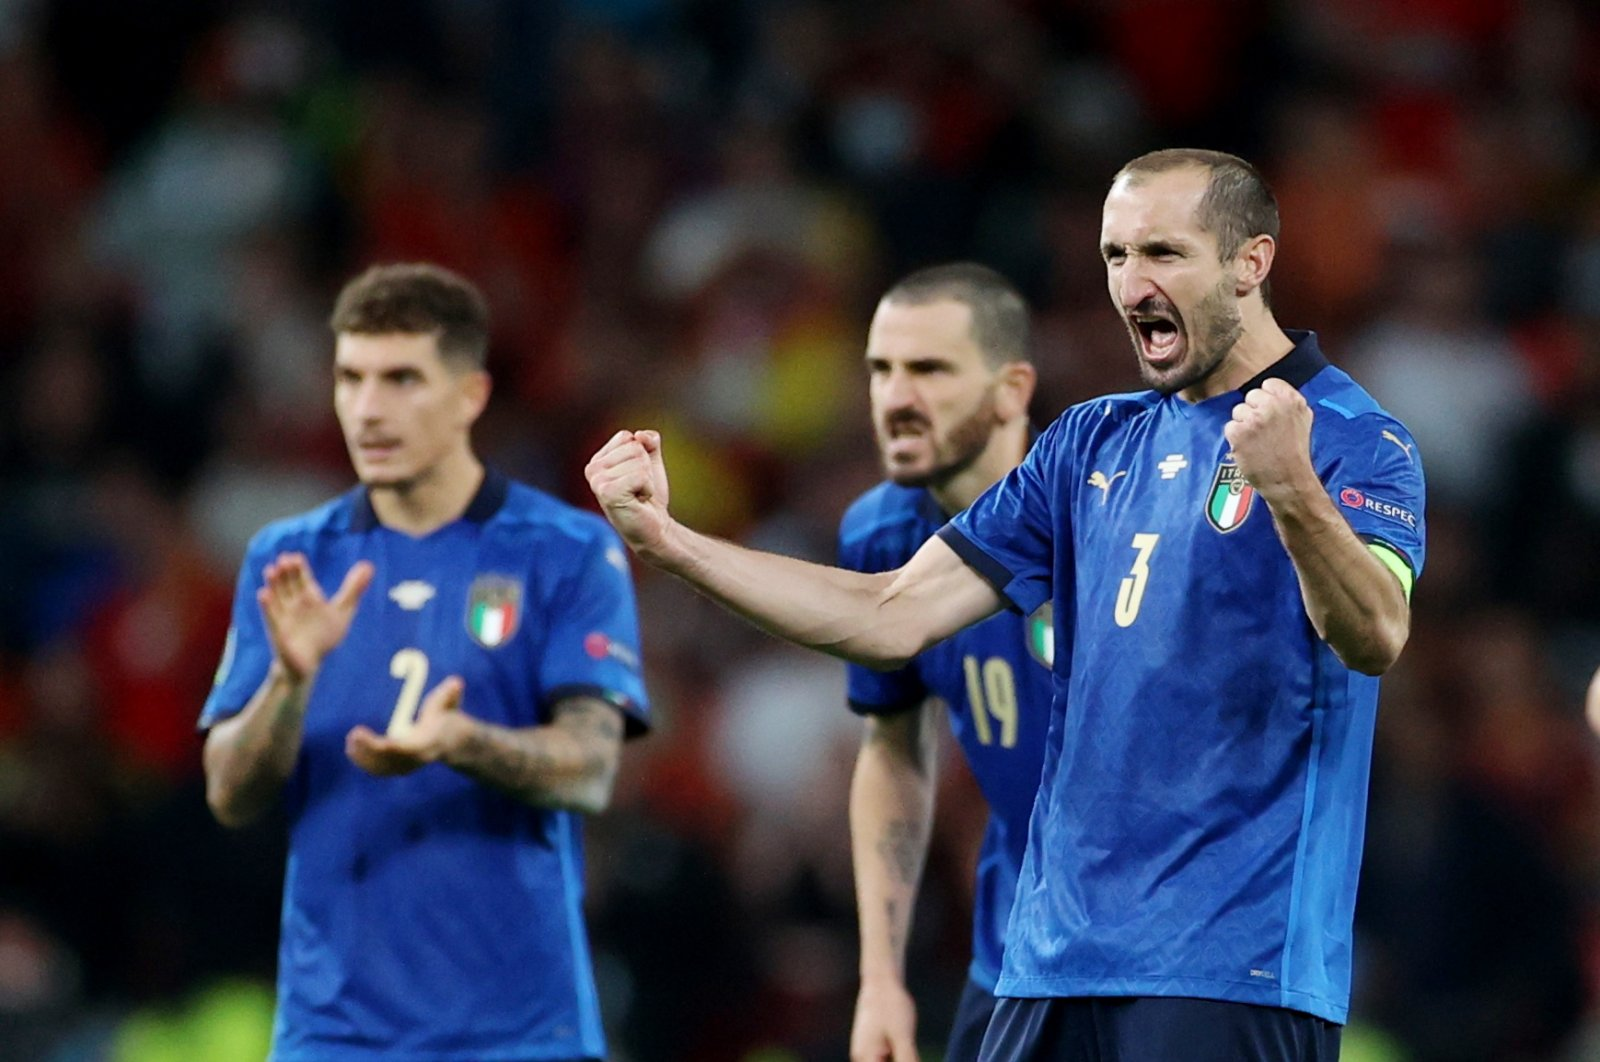 Italy's Leonardo Bonucci and Giorgio Chiellini react during the penalty shootout in the semifinal match between Italy and Spain at the Wembley Stadium, London, U.K., on July 6, 2021. (Reuters Photo)